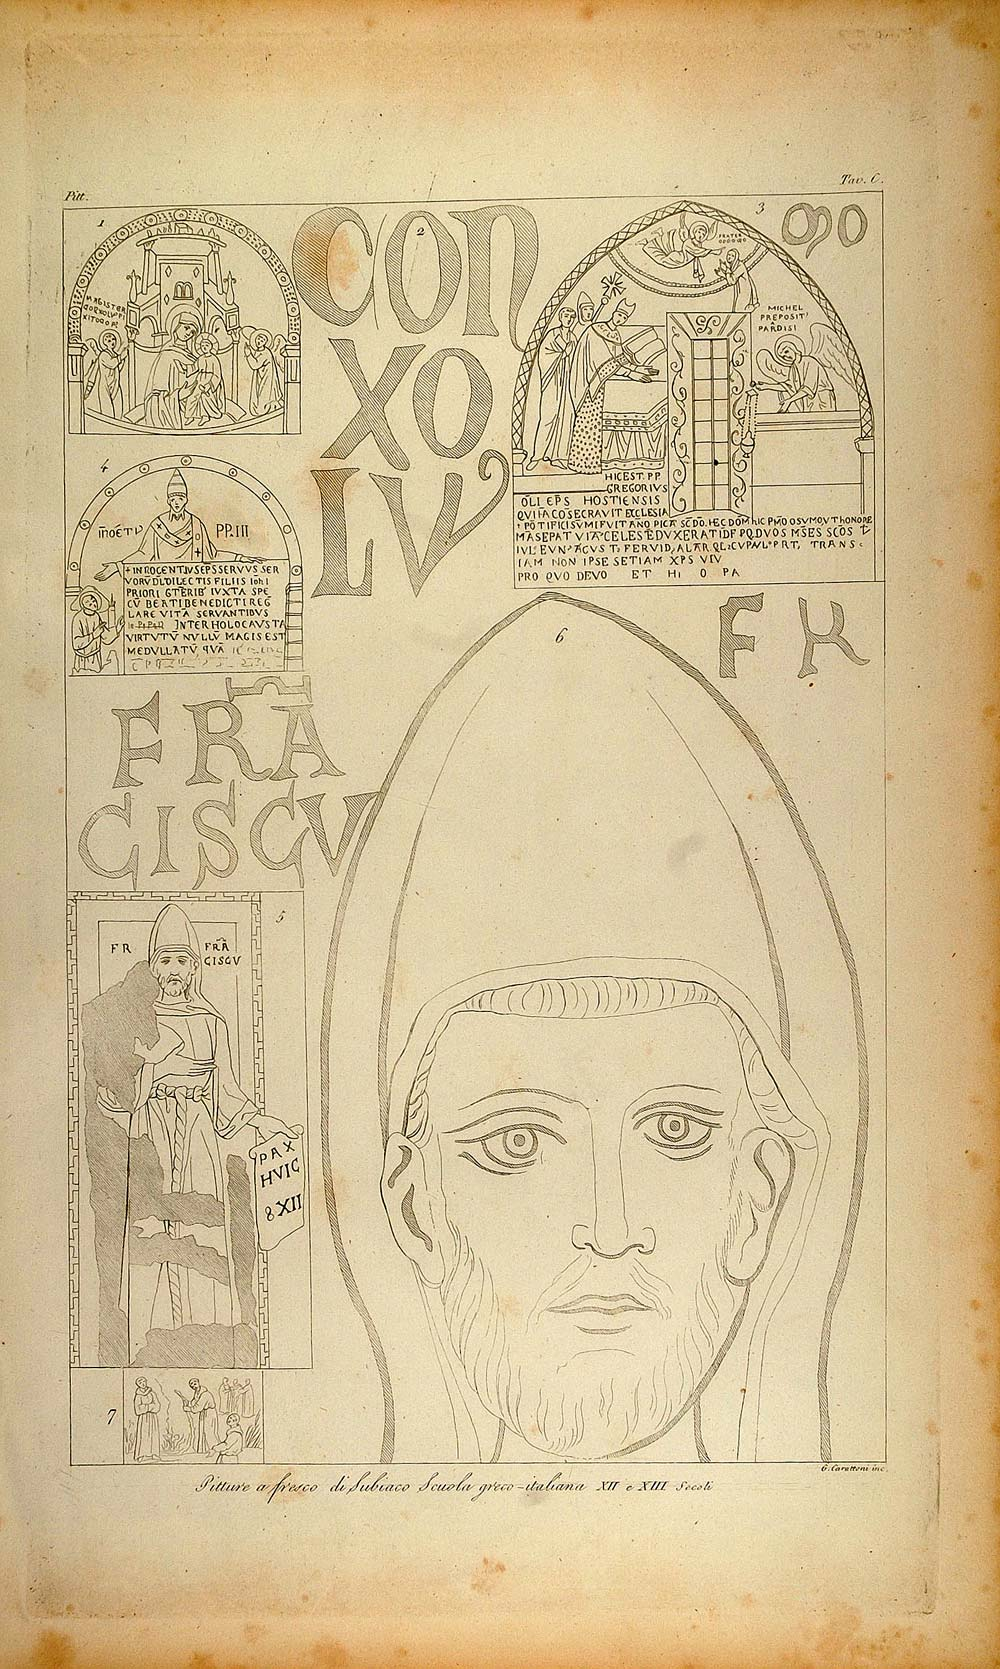 1845 Antique Engraving Monk Subiaco Fresco Painting - ORIGINAL ARCH8